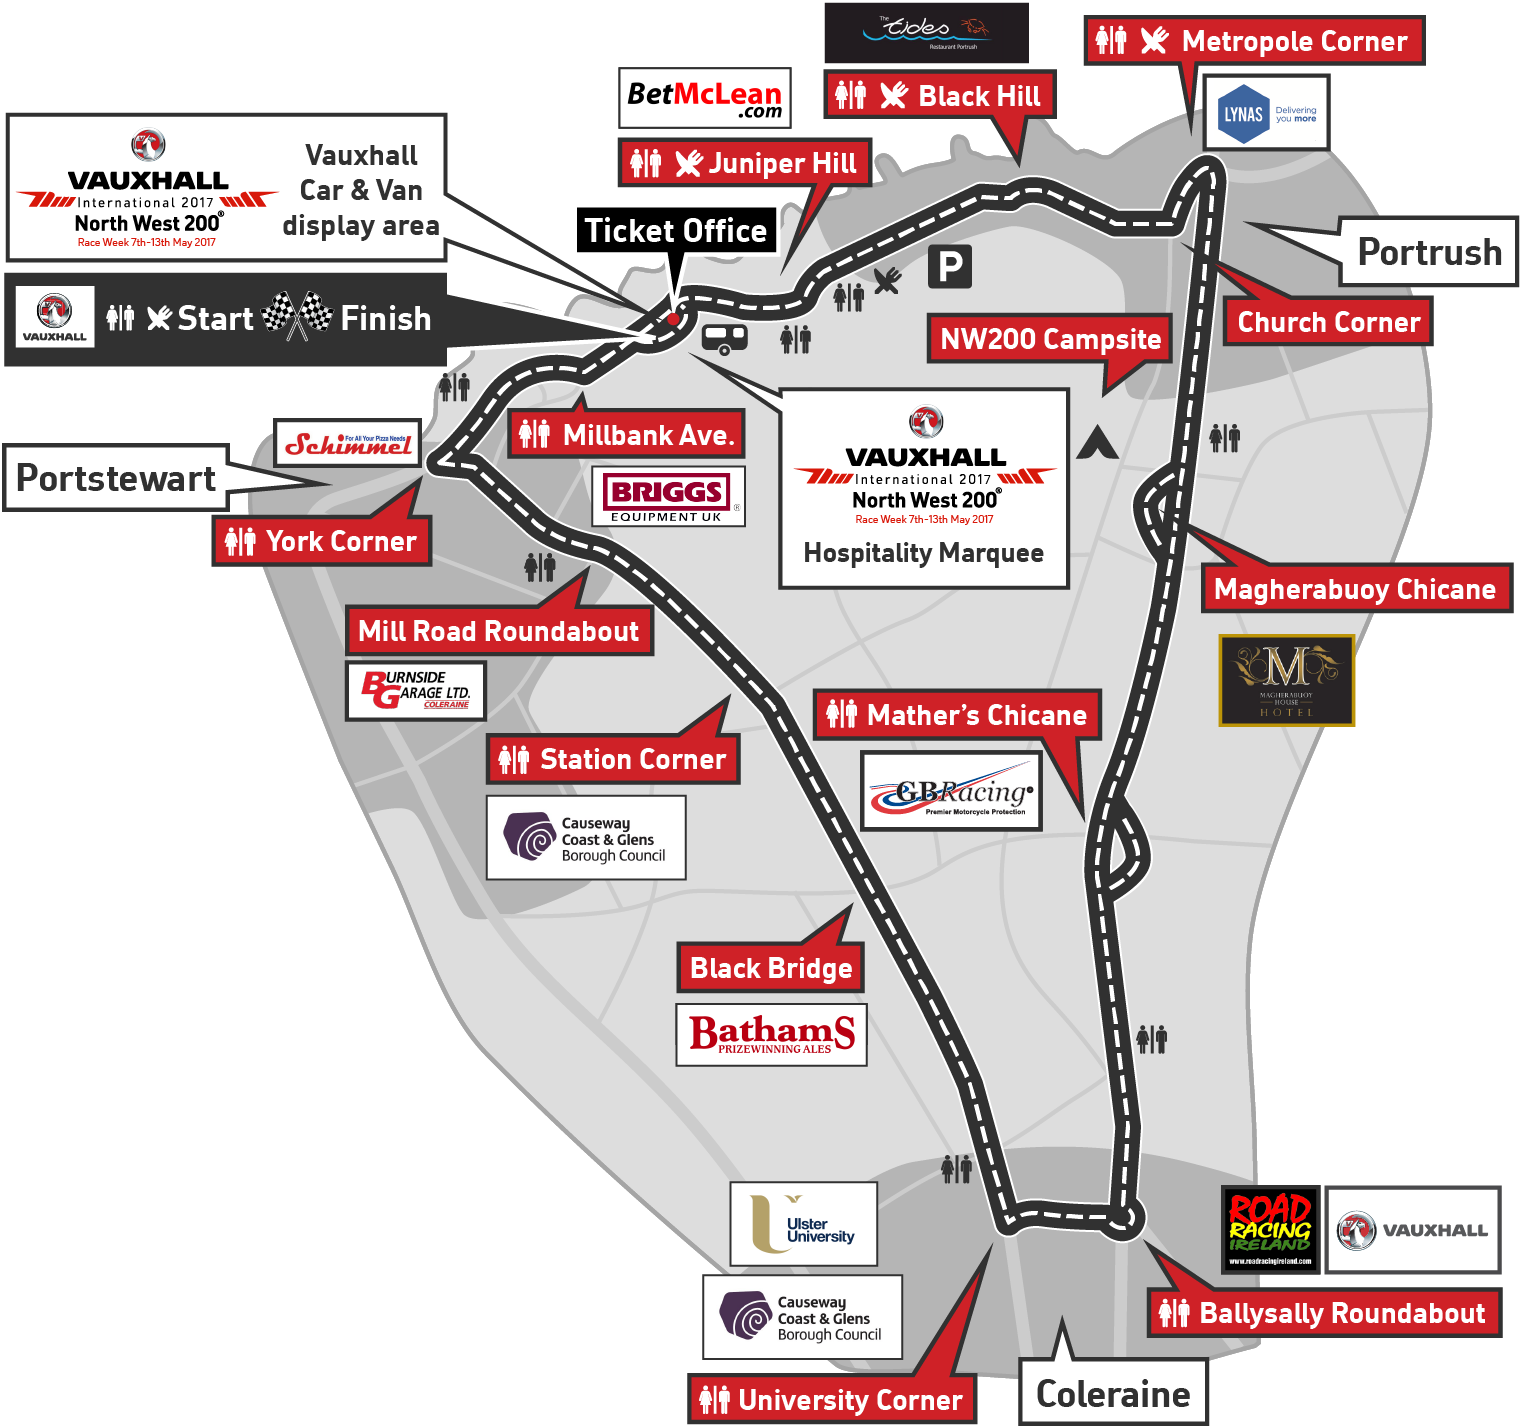 http://northwest200.org/wp-content/uploads/2017/12/circuit-map-with-sponsors-v2.png